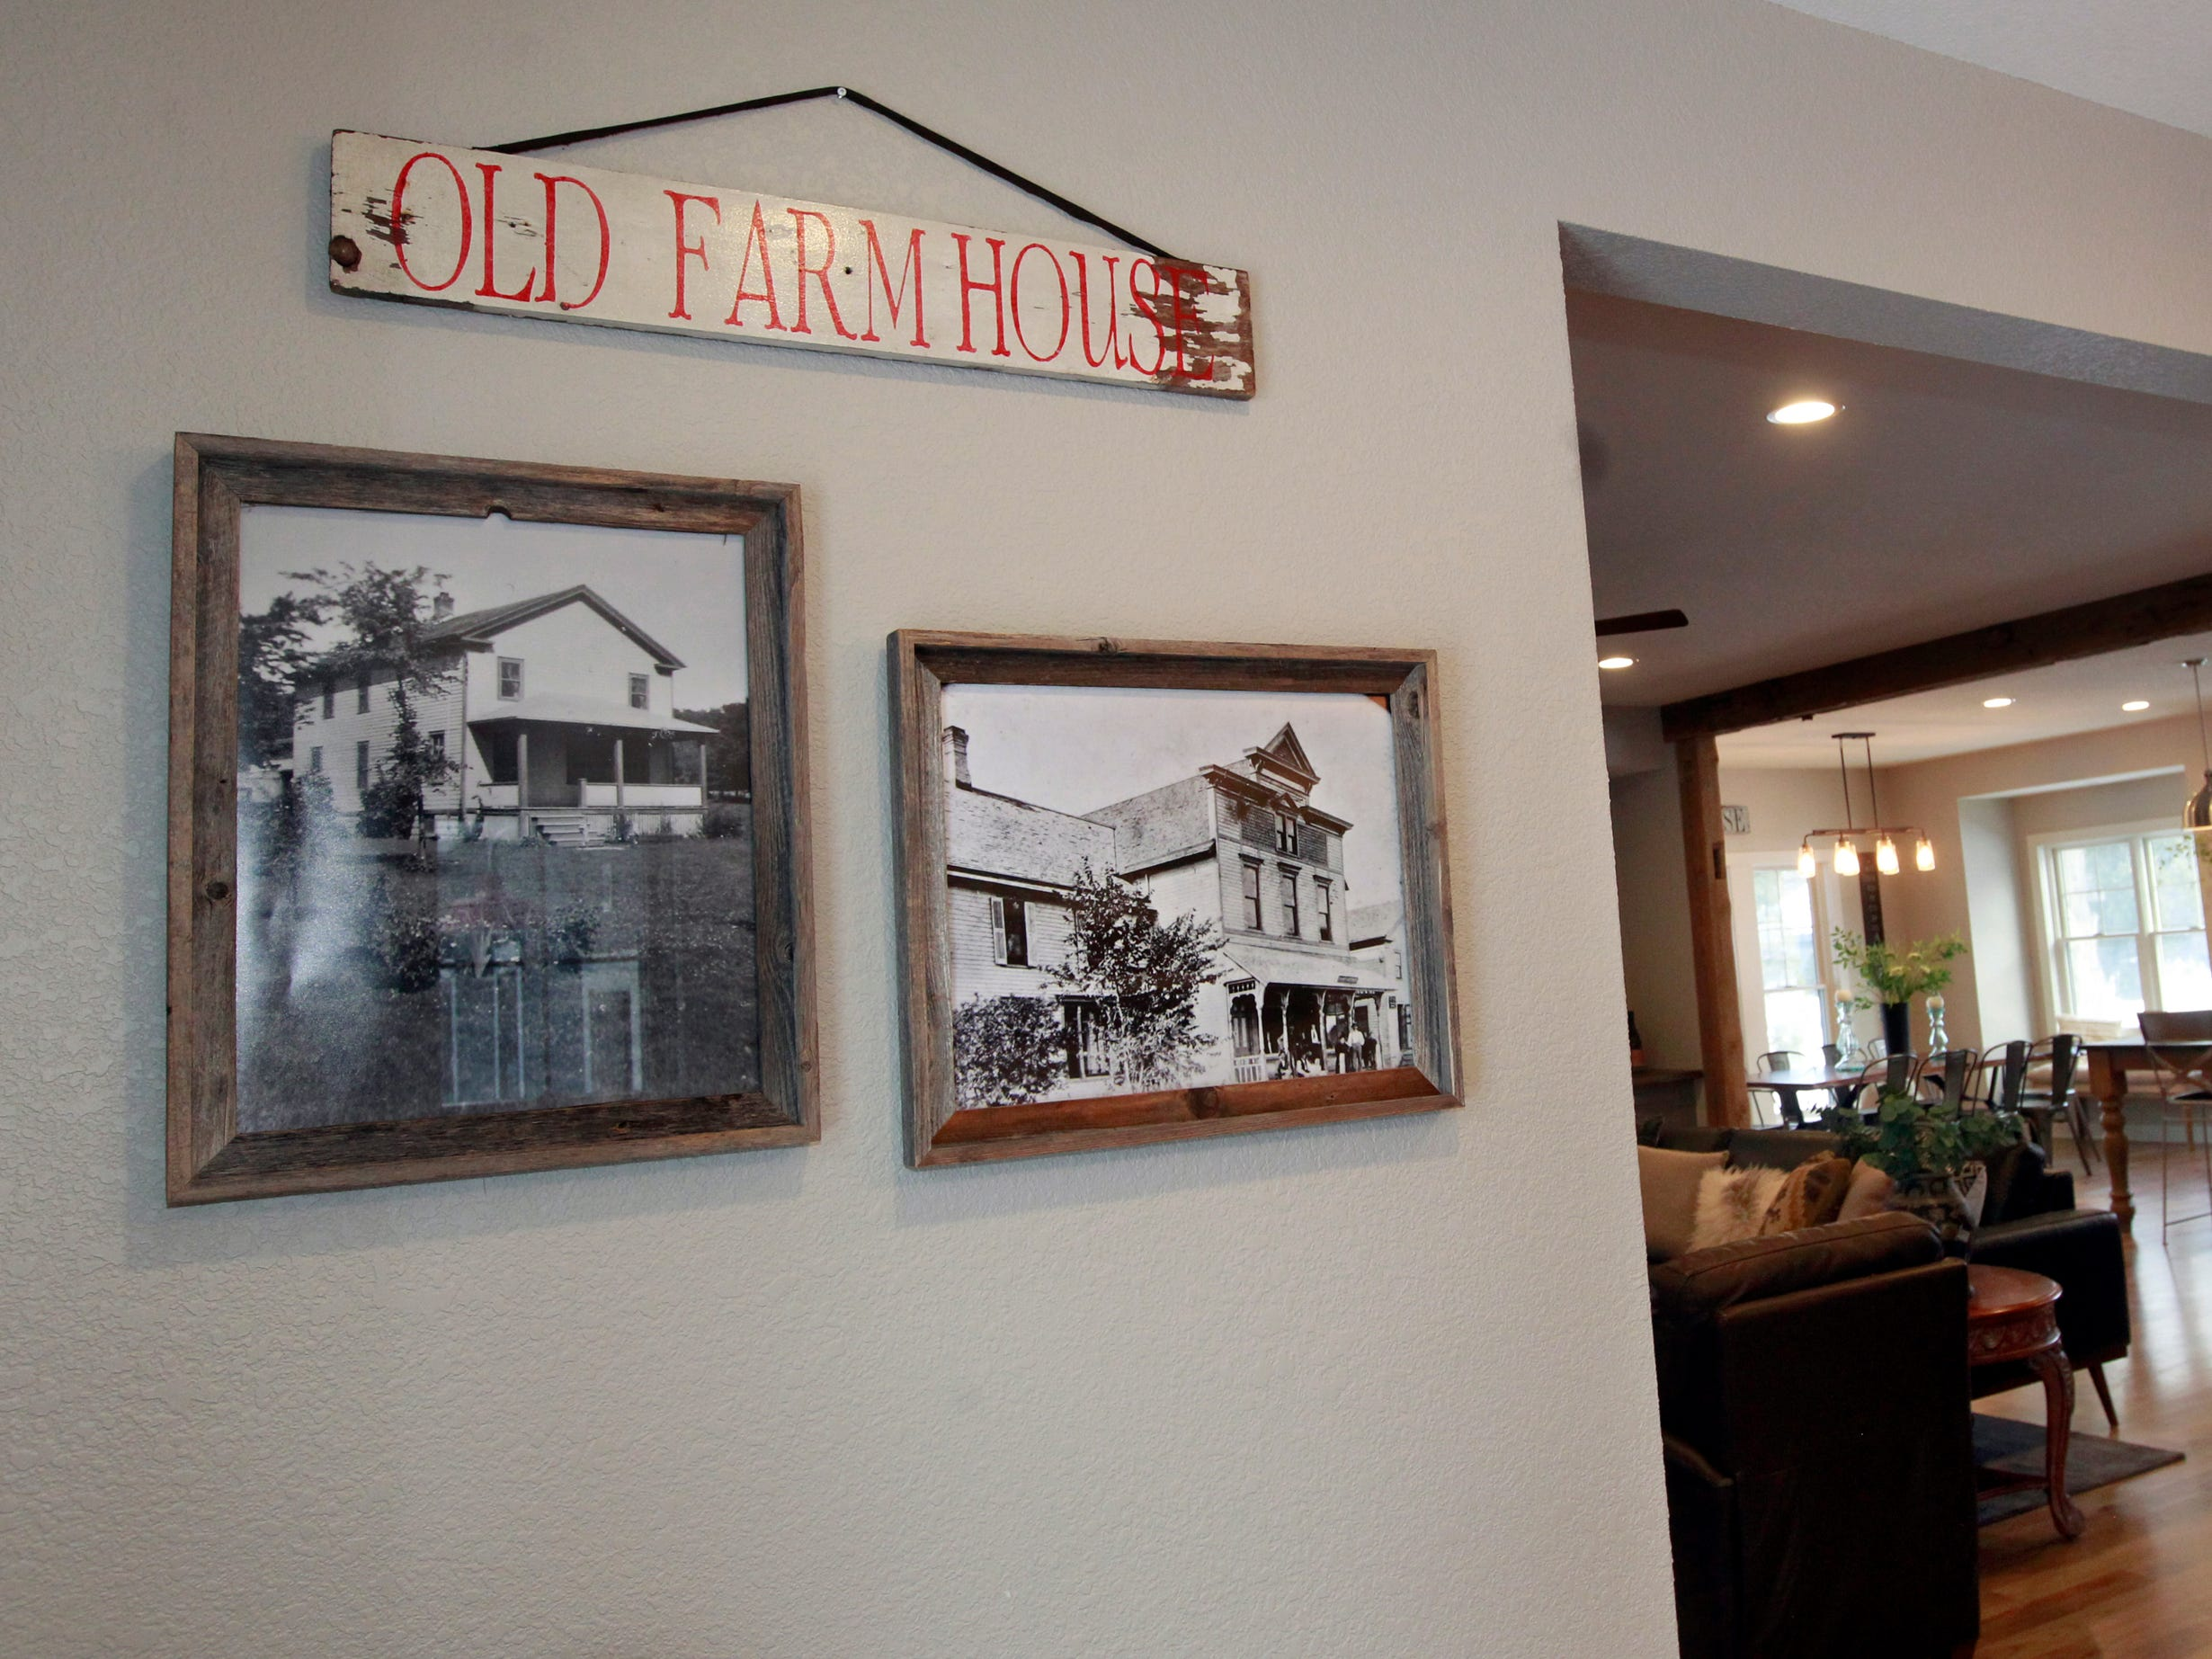 Historic photos are reminders of the farmhouse that was once on the property.